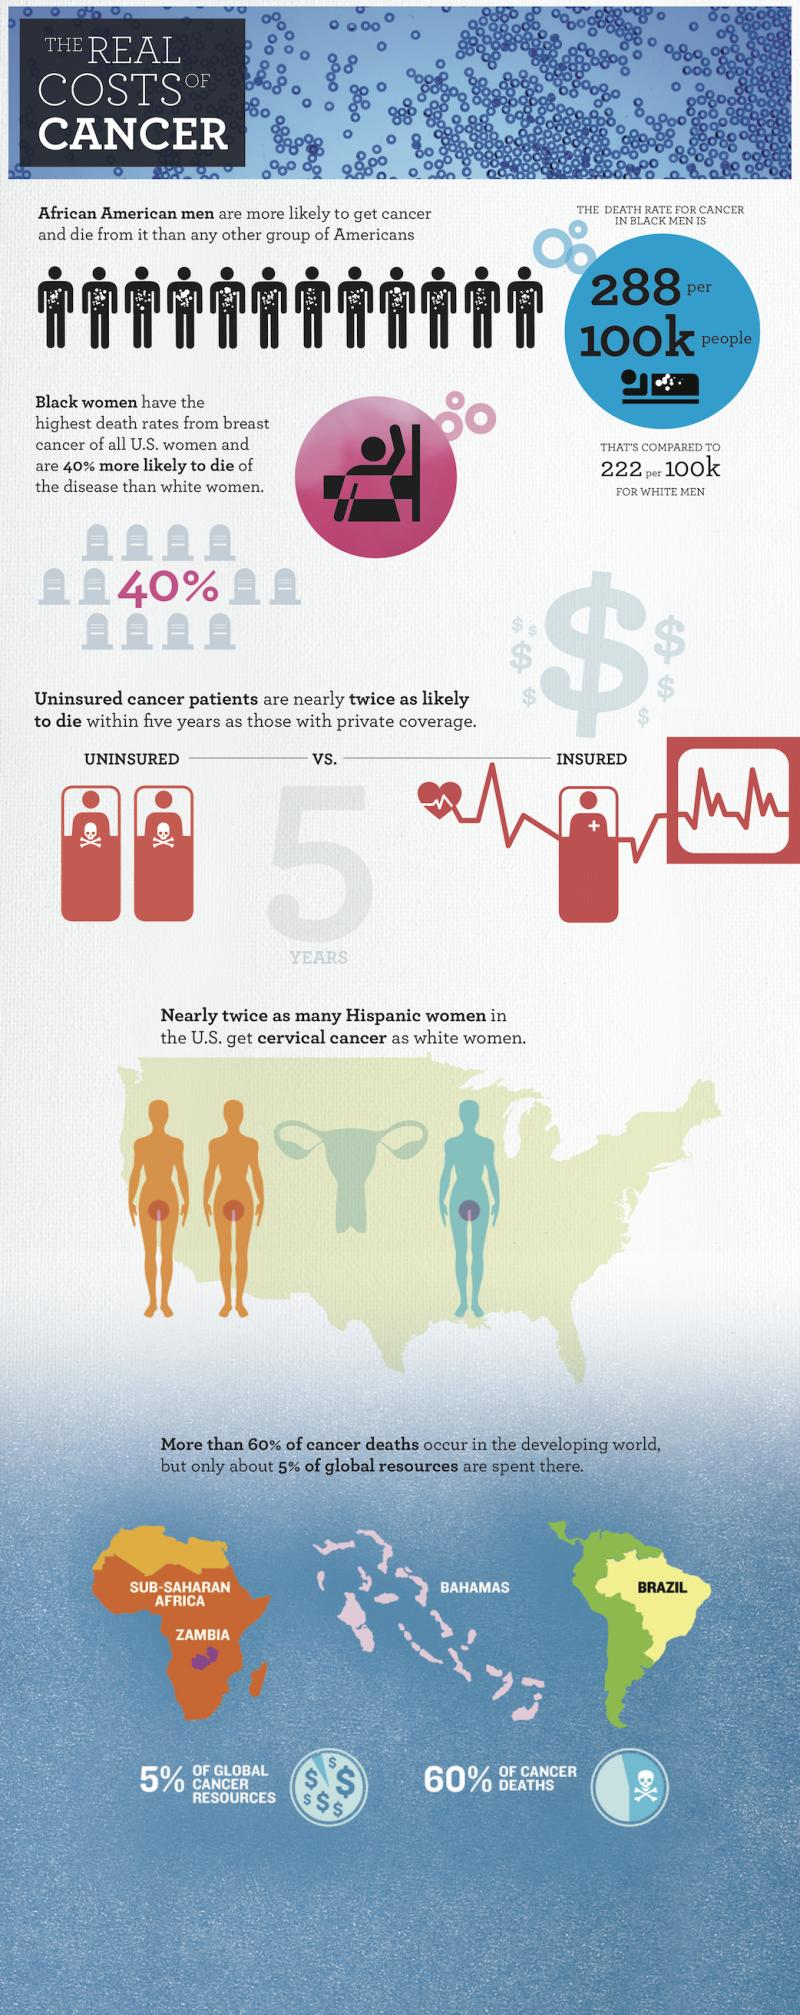 "The Real Costs of Cancer TakePart.com Infographic"" width="